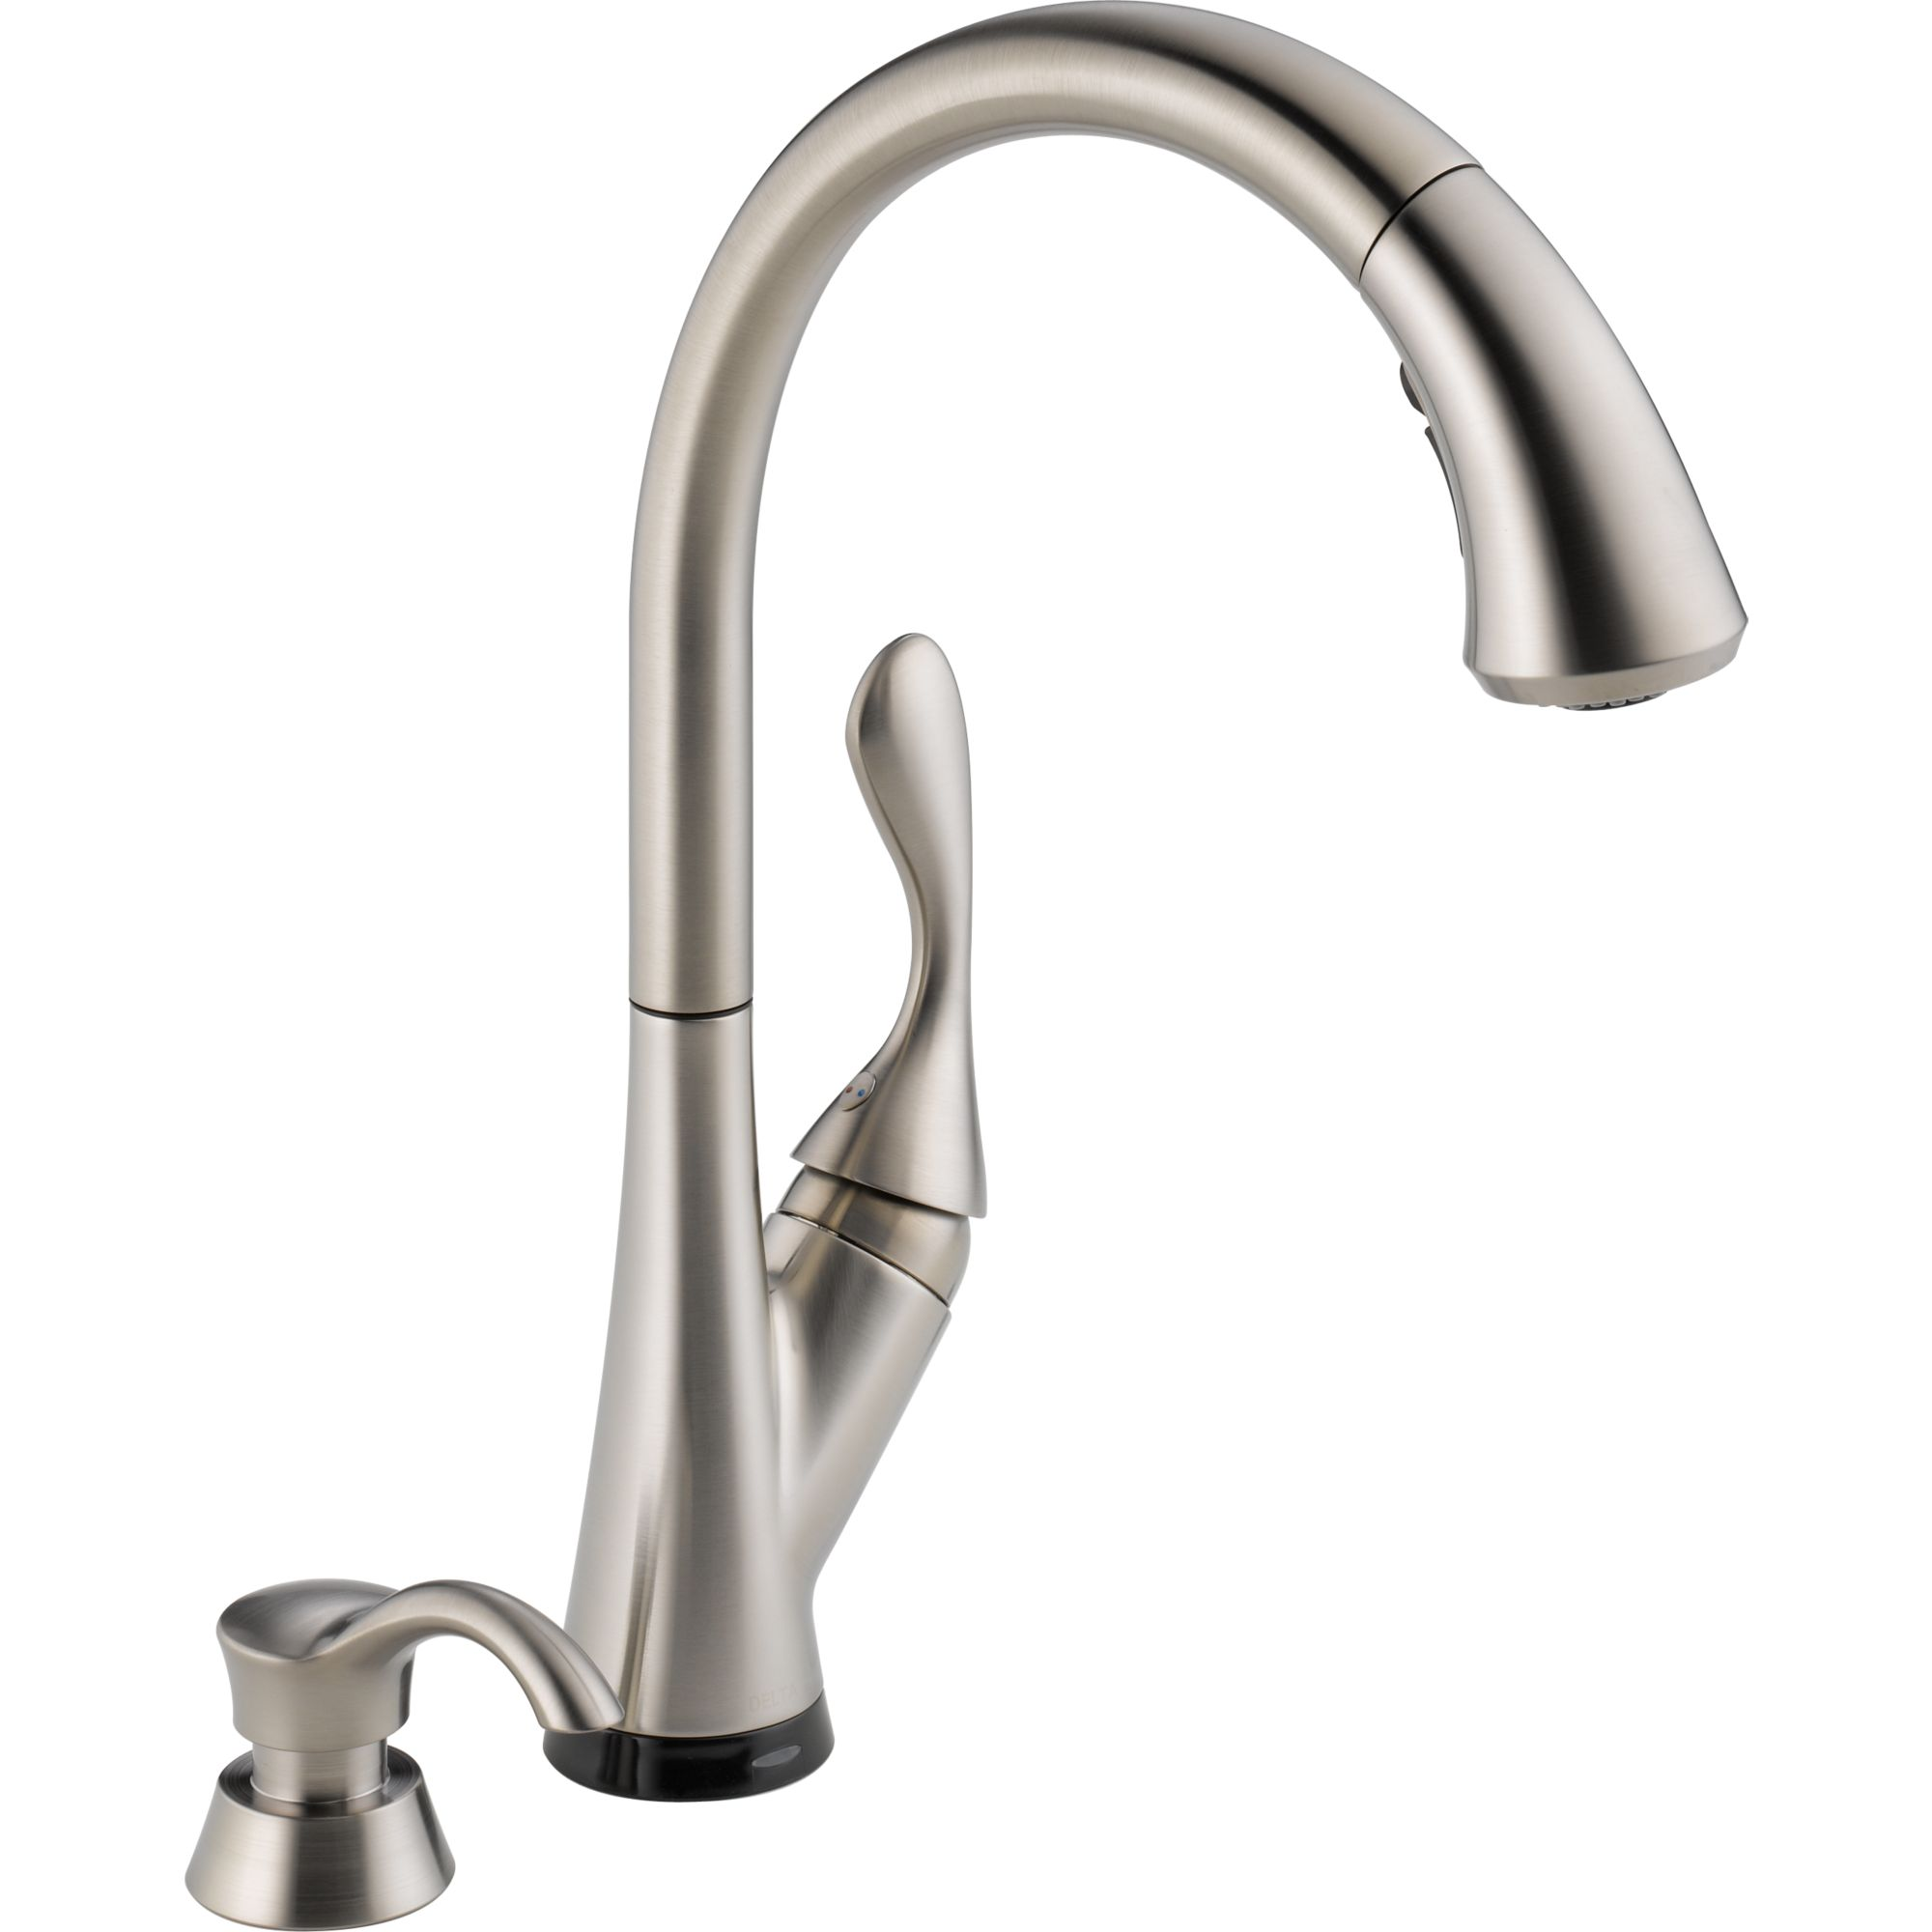 sink amazing inspired to leland design your bronze pull faucet delta cool down ideas elegant kitchen of faucets